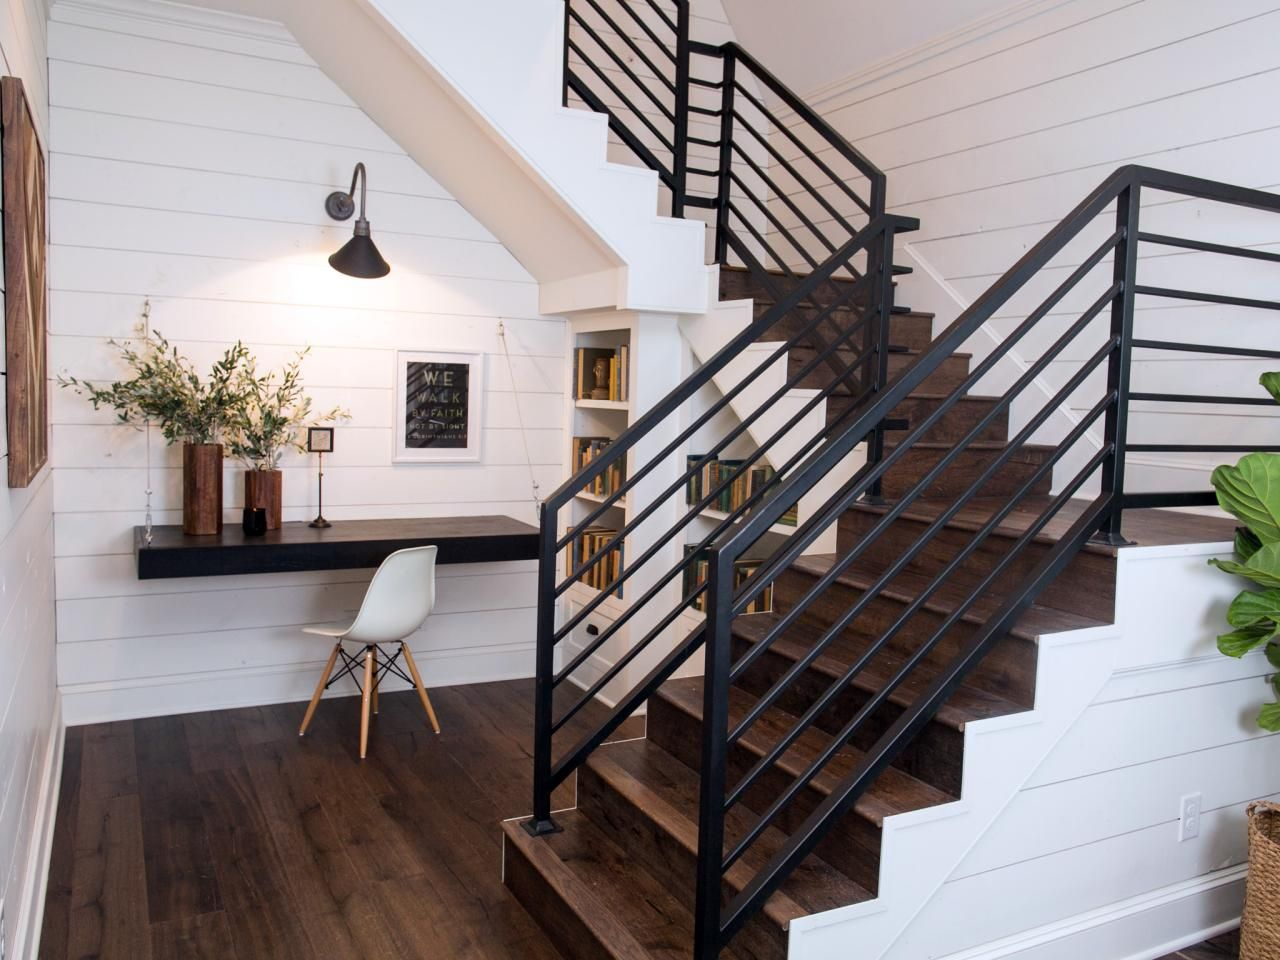 Chip and joanna gaines transform a barn into a rustic home perfect for - A Must See Fixer Upper Reno Rustic Barn Doors And A Barn To Go With Them